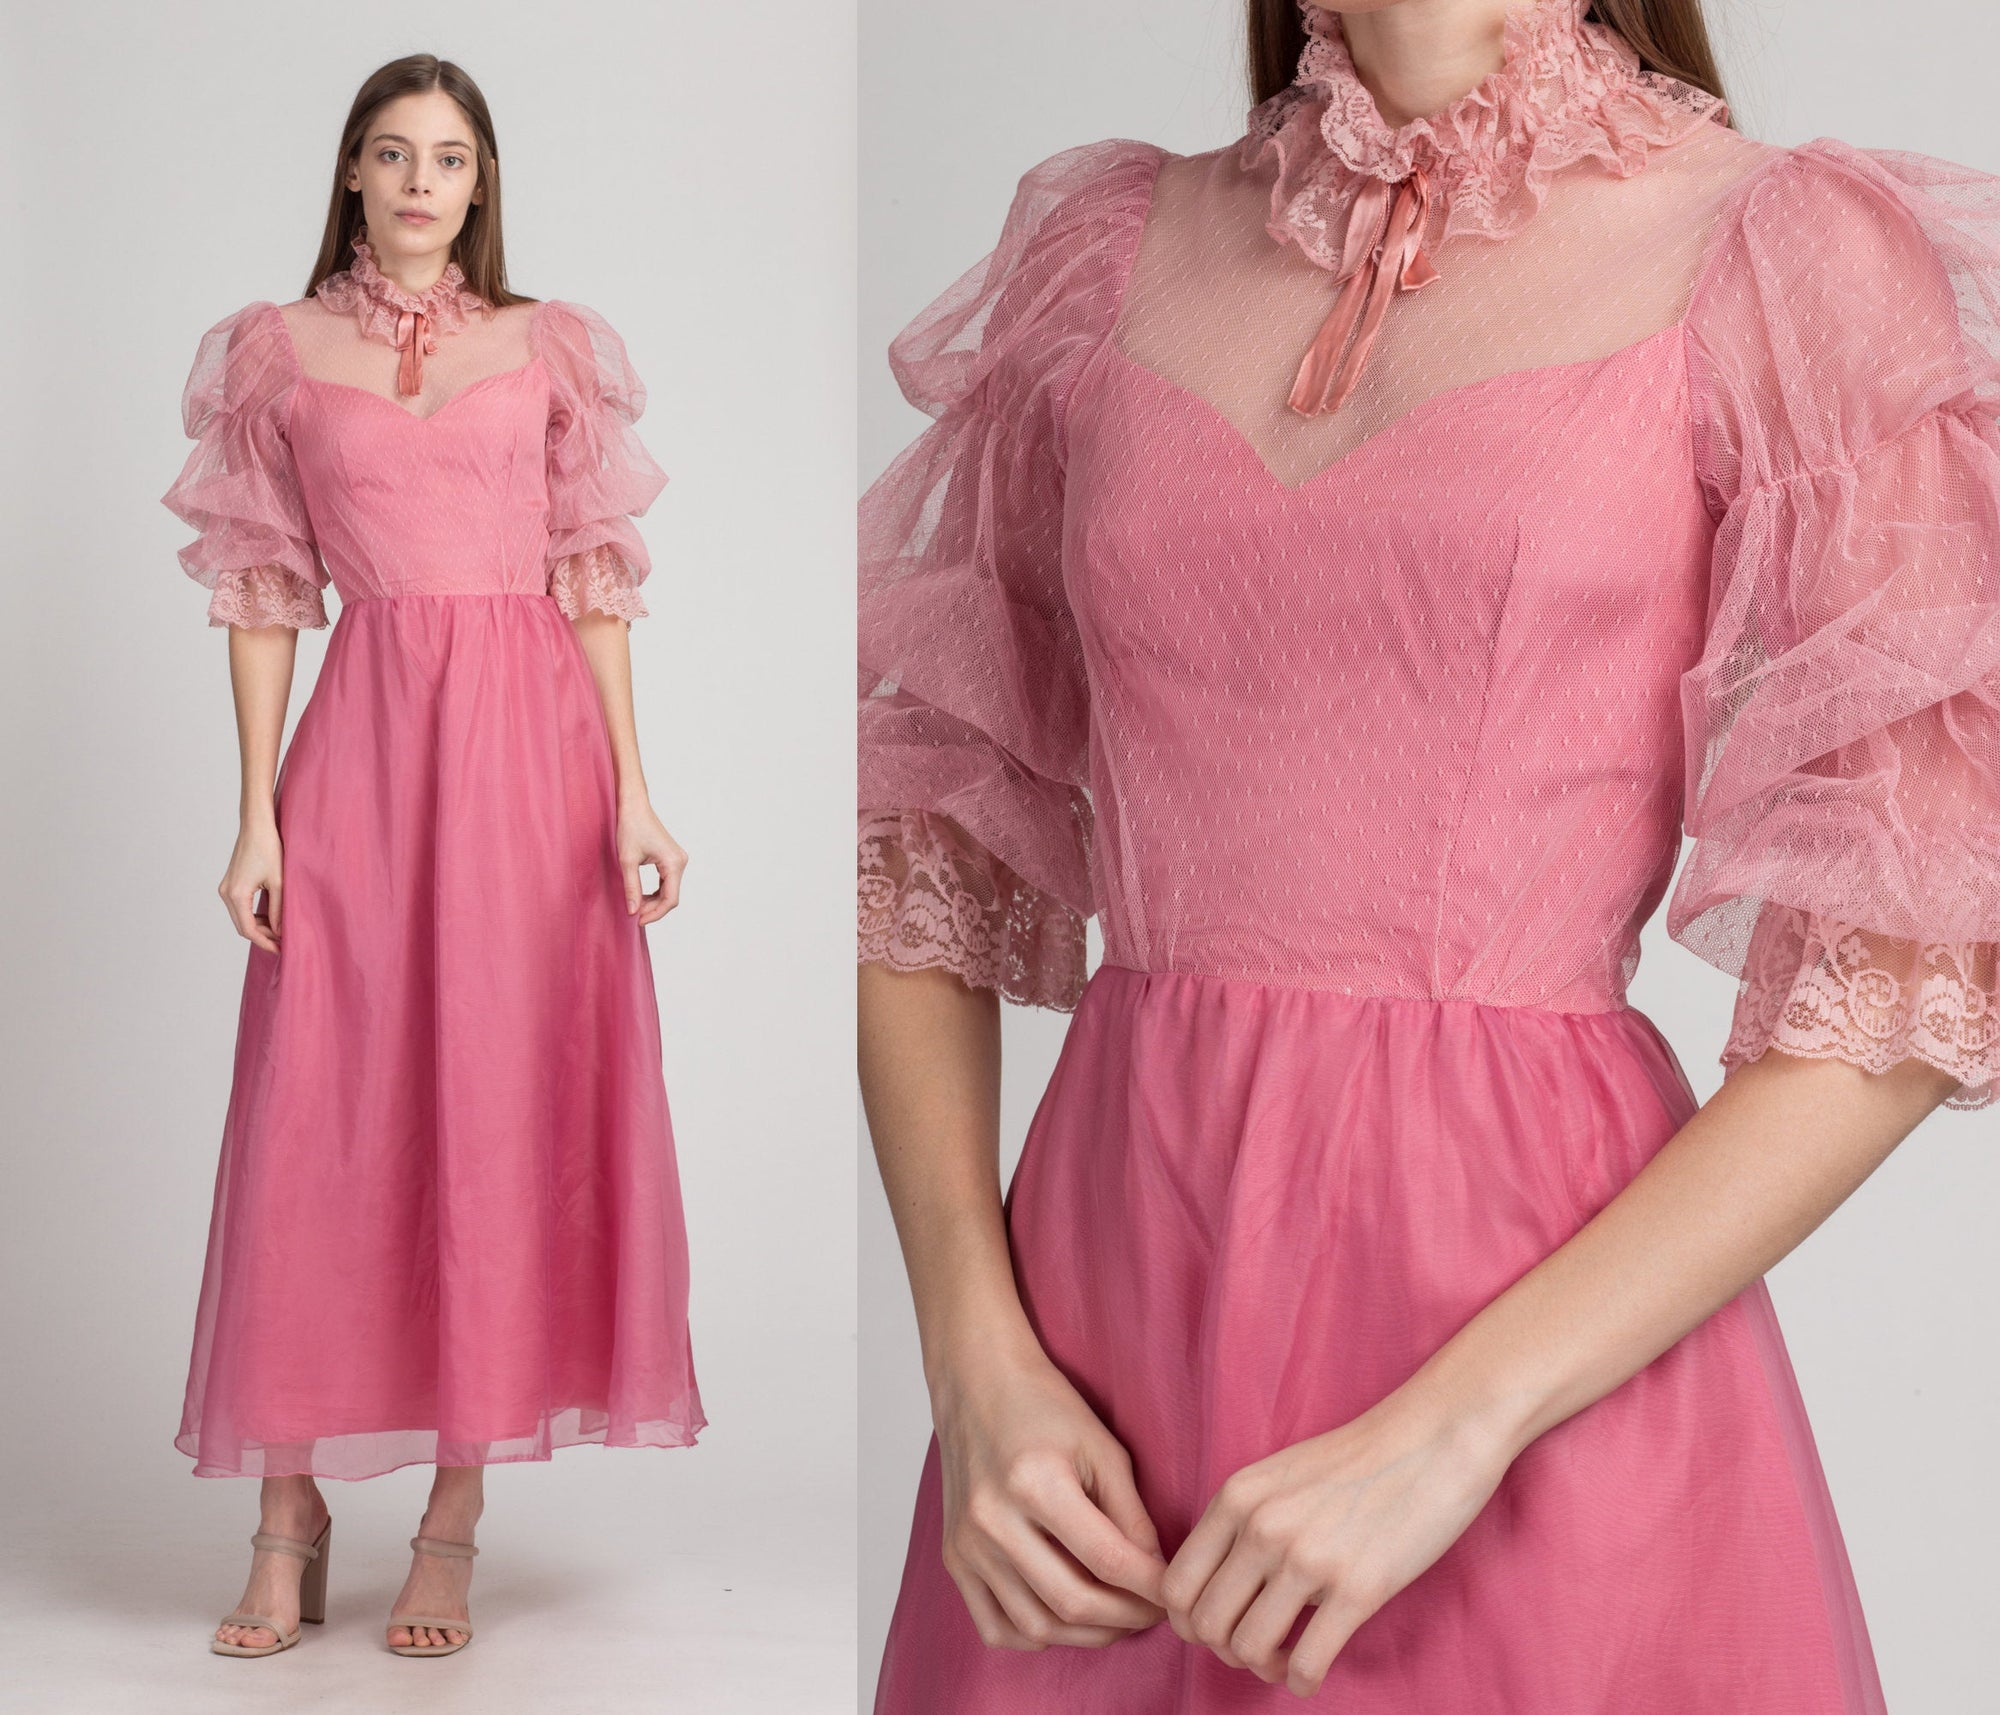 70s Victorian Pink Lace Puff Sleeve Party Dress - Extra Small | Vintage A Line Sheer Trim Formal Gown